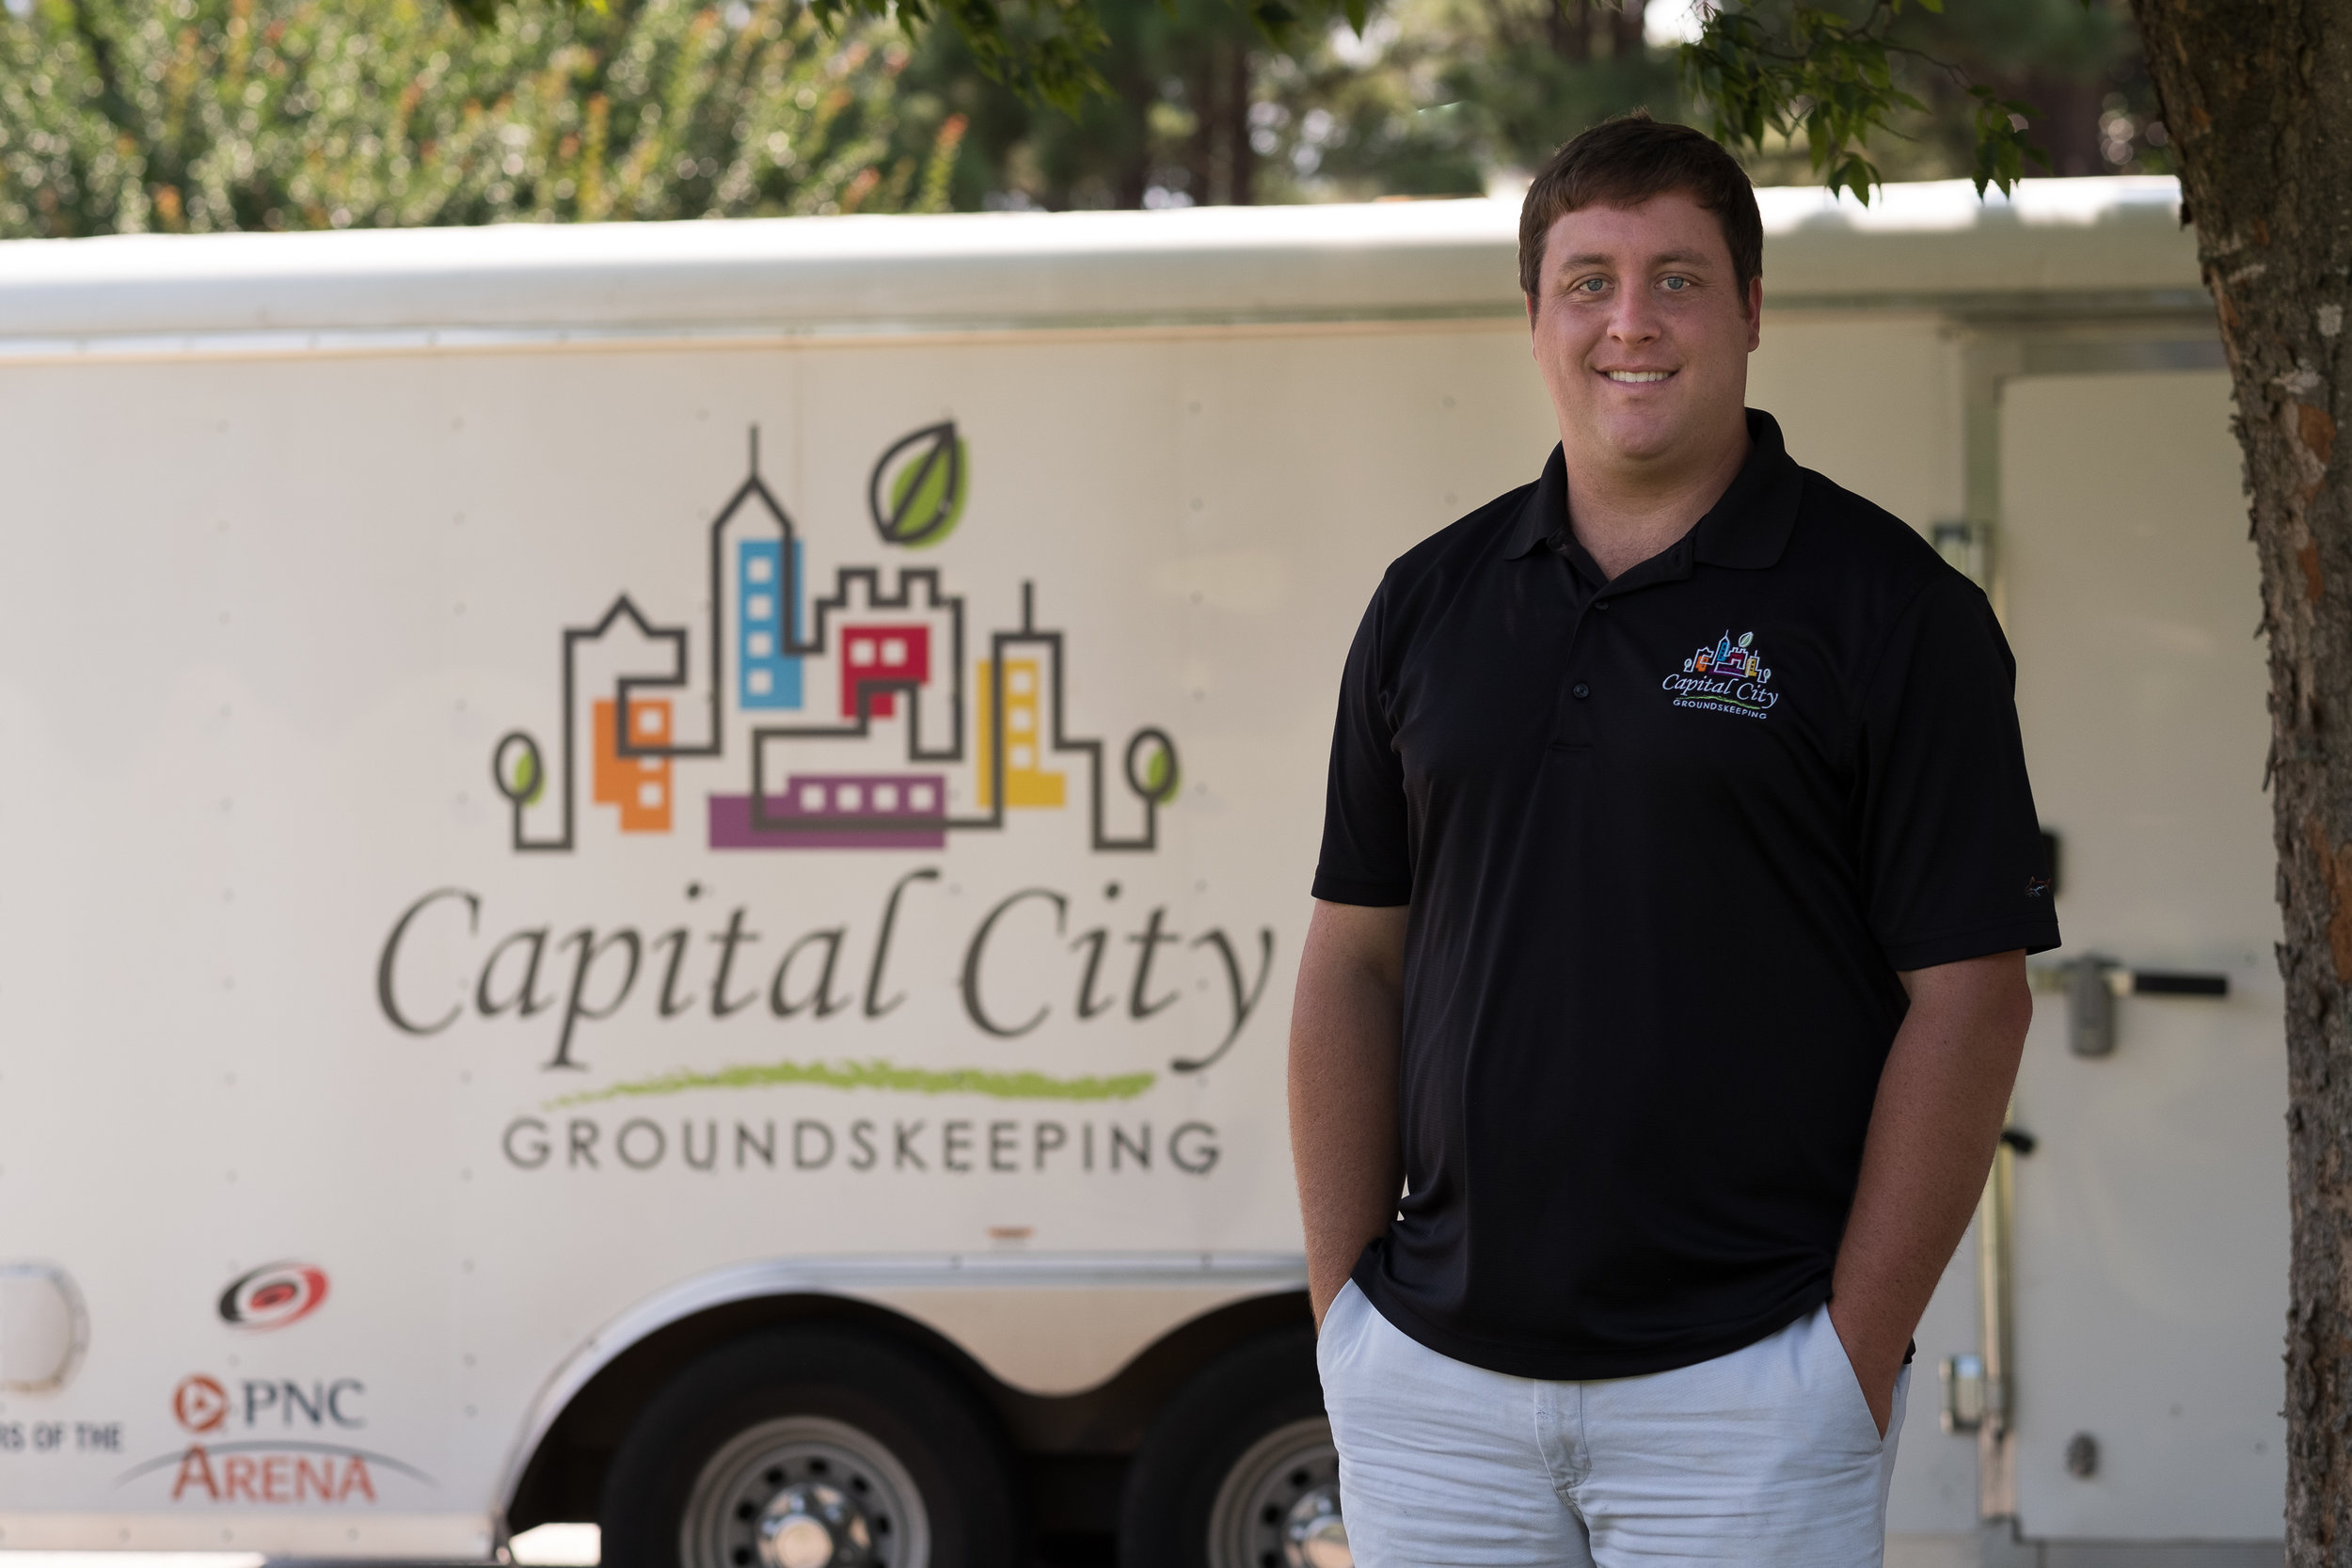 """Ryan Walsh, Founder & Owner - Capital City Groundskeeping is a Raleigh-based company that operates six days a week throughout Wake County and beyond with up to 10 people. But that wasn't always the case.Founder and owner Ryan Walsh started mowing lawns while still in high school back in 2000. The young entrepreneur says he started because he """"wanted to work, make money, and enjoy the independence it brought"""". At NCSU he majored in Turf and Grass Science which boosted his knowledge in landscaping and where he learned both the functional and ornamental characteristics of different grasses. Ryan worked through college expanding his portfolio. He graduated in 2013 and then the company, which he self-financed, really started growing.Even though Ryan had the support of his parents, he spent his days working with grass and mulch and his evenings with paperwork. Through a family connection, Ryan met Patricia Villa of CSFAS and things started to turn around.Patricia and her team put all his accounts in order, brought his QuickBooks file up to current and corrected the tax errors they found. They've been working together for three years and Ryan says, """"the CSFAS team is trustworthy and fair.""""The team provides monthly financial reports and forecasting, help manage payroll and handle all annual tax filings. Ryan says that having """"accurate financial records allows for good decision-making on equipment purchases, hiring, and expansion."""" All this has freed up at least 10 hours a week for Ryan allowing him to focus on bidding on new contracts and managing the business.Since its beginning 20 years ago, Walsh and his team have expanded from mowing lawns to providing all maintenance services including hedge trimming, plant installs, sodding, some flowerbed and mulch installations, for mostly commercial businesses. Ryan counts the PNC Arena, several homeowners associations, and the largest cemetery in Raleigh as some of his clients.His goal for the next year is to grow the company by b"""